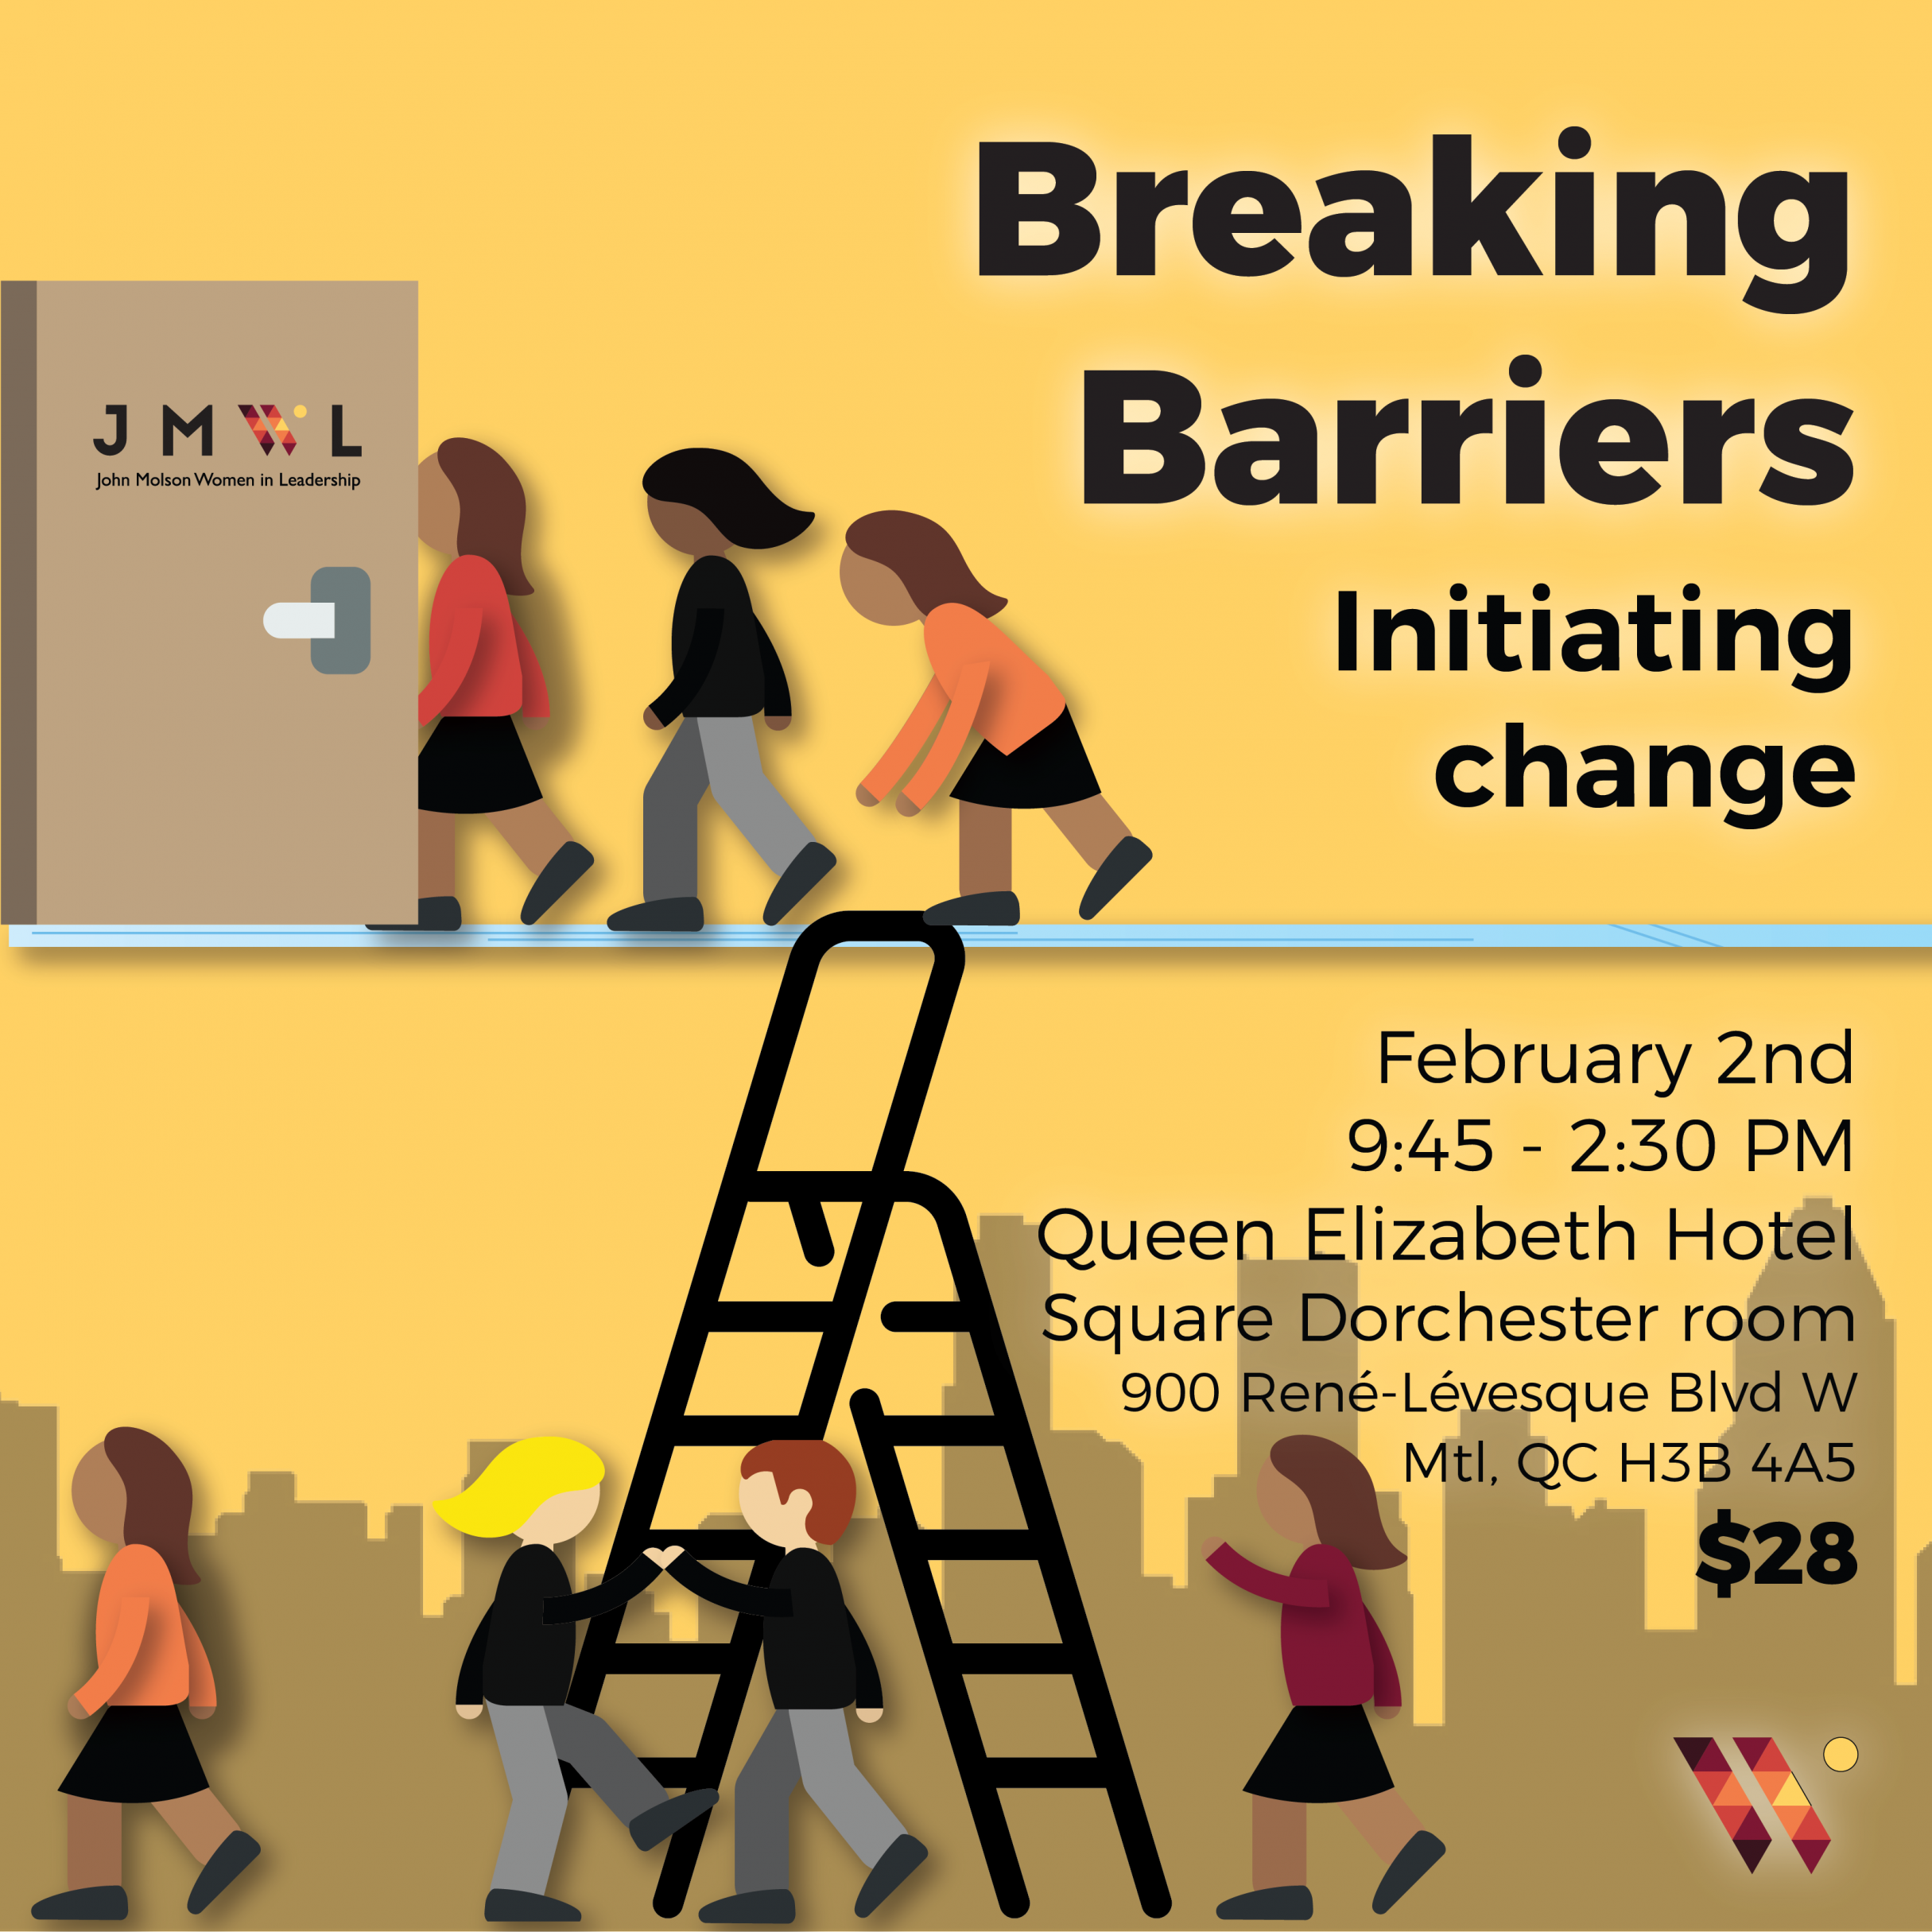 Breaking Barriers: Initiating change JMWL